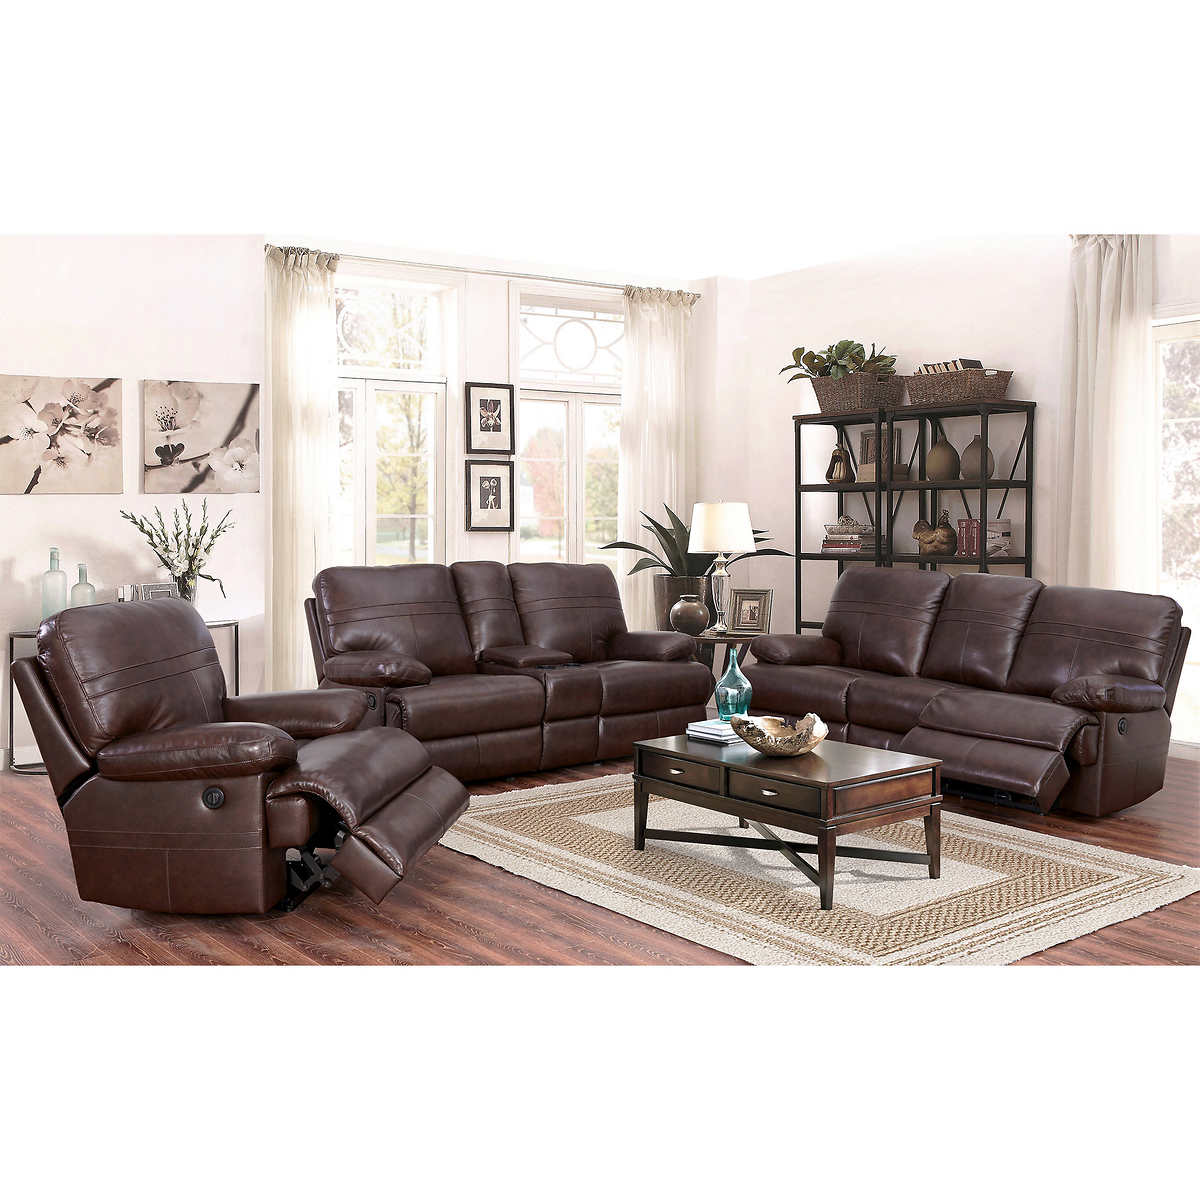 Reclining Living Room Sets Catterton 3 Piece Top Grain Leather Power Reclining Living Room Set